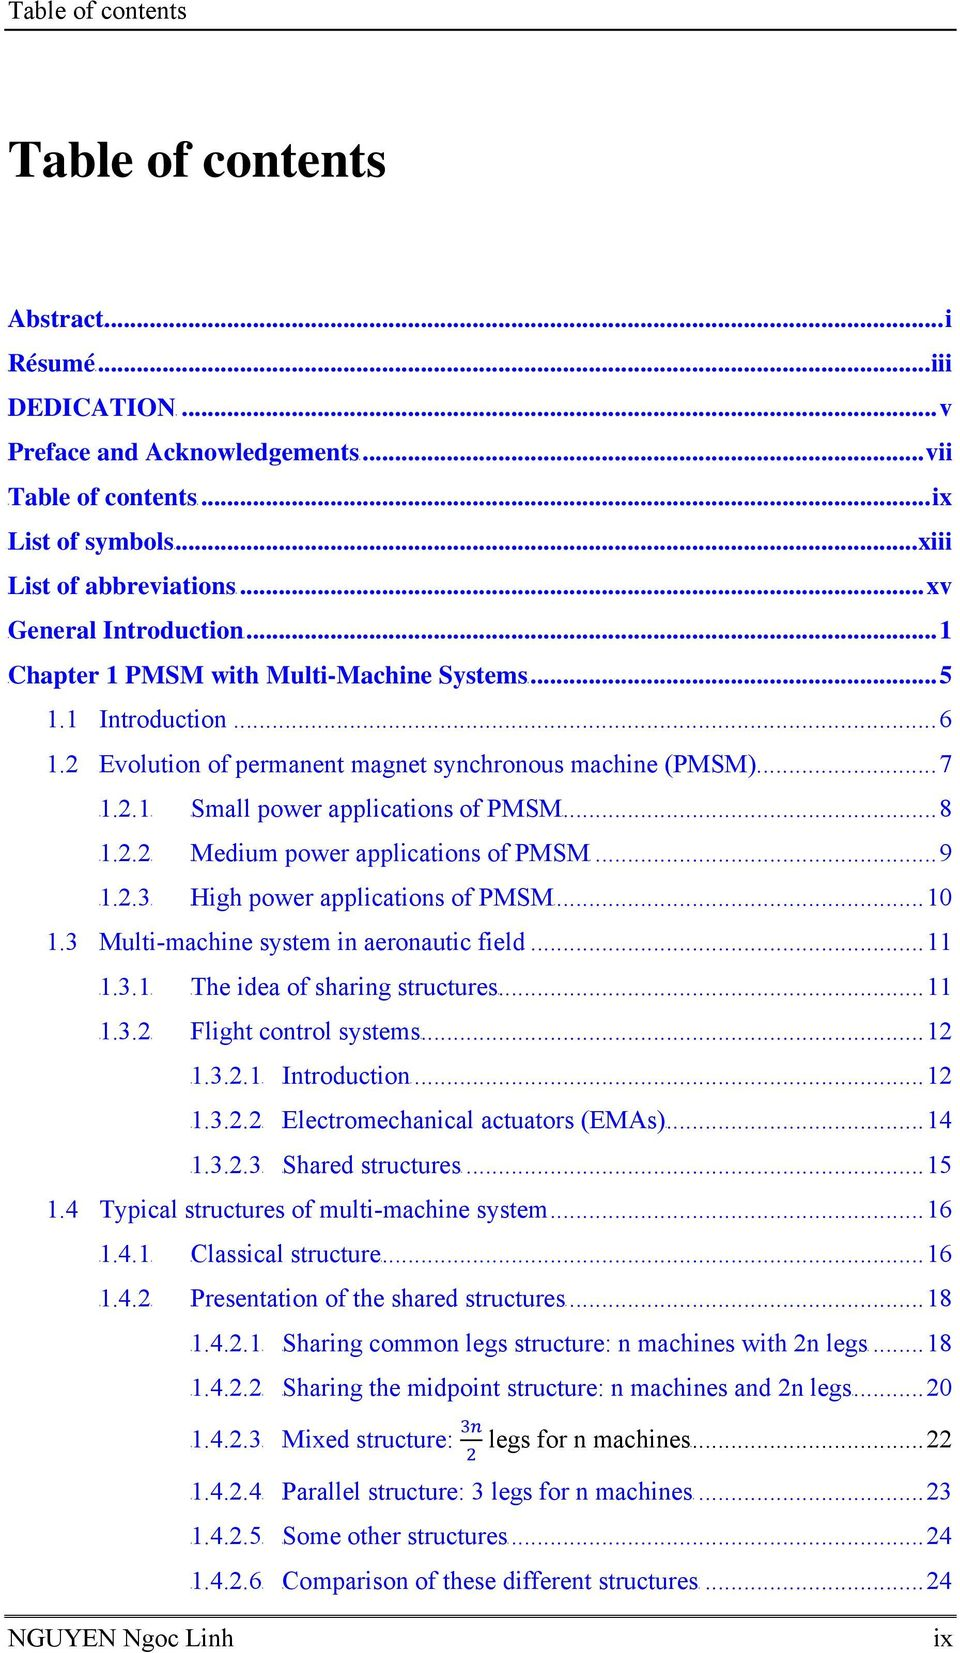 2 Evolution of permanent magnet synchronous machine (PMSM)... 7 9T1.2.19T 9TSmall power applications of PMSM9T... 8 9T1.2.29T 9TMedium power applications of PMSM9T... 9 9T1.2.39T 9THigh power applications of PMSM9T.